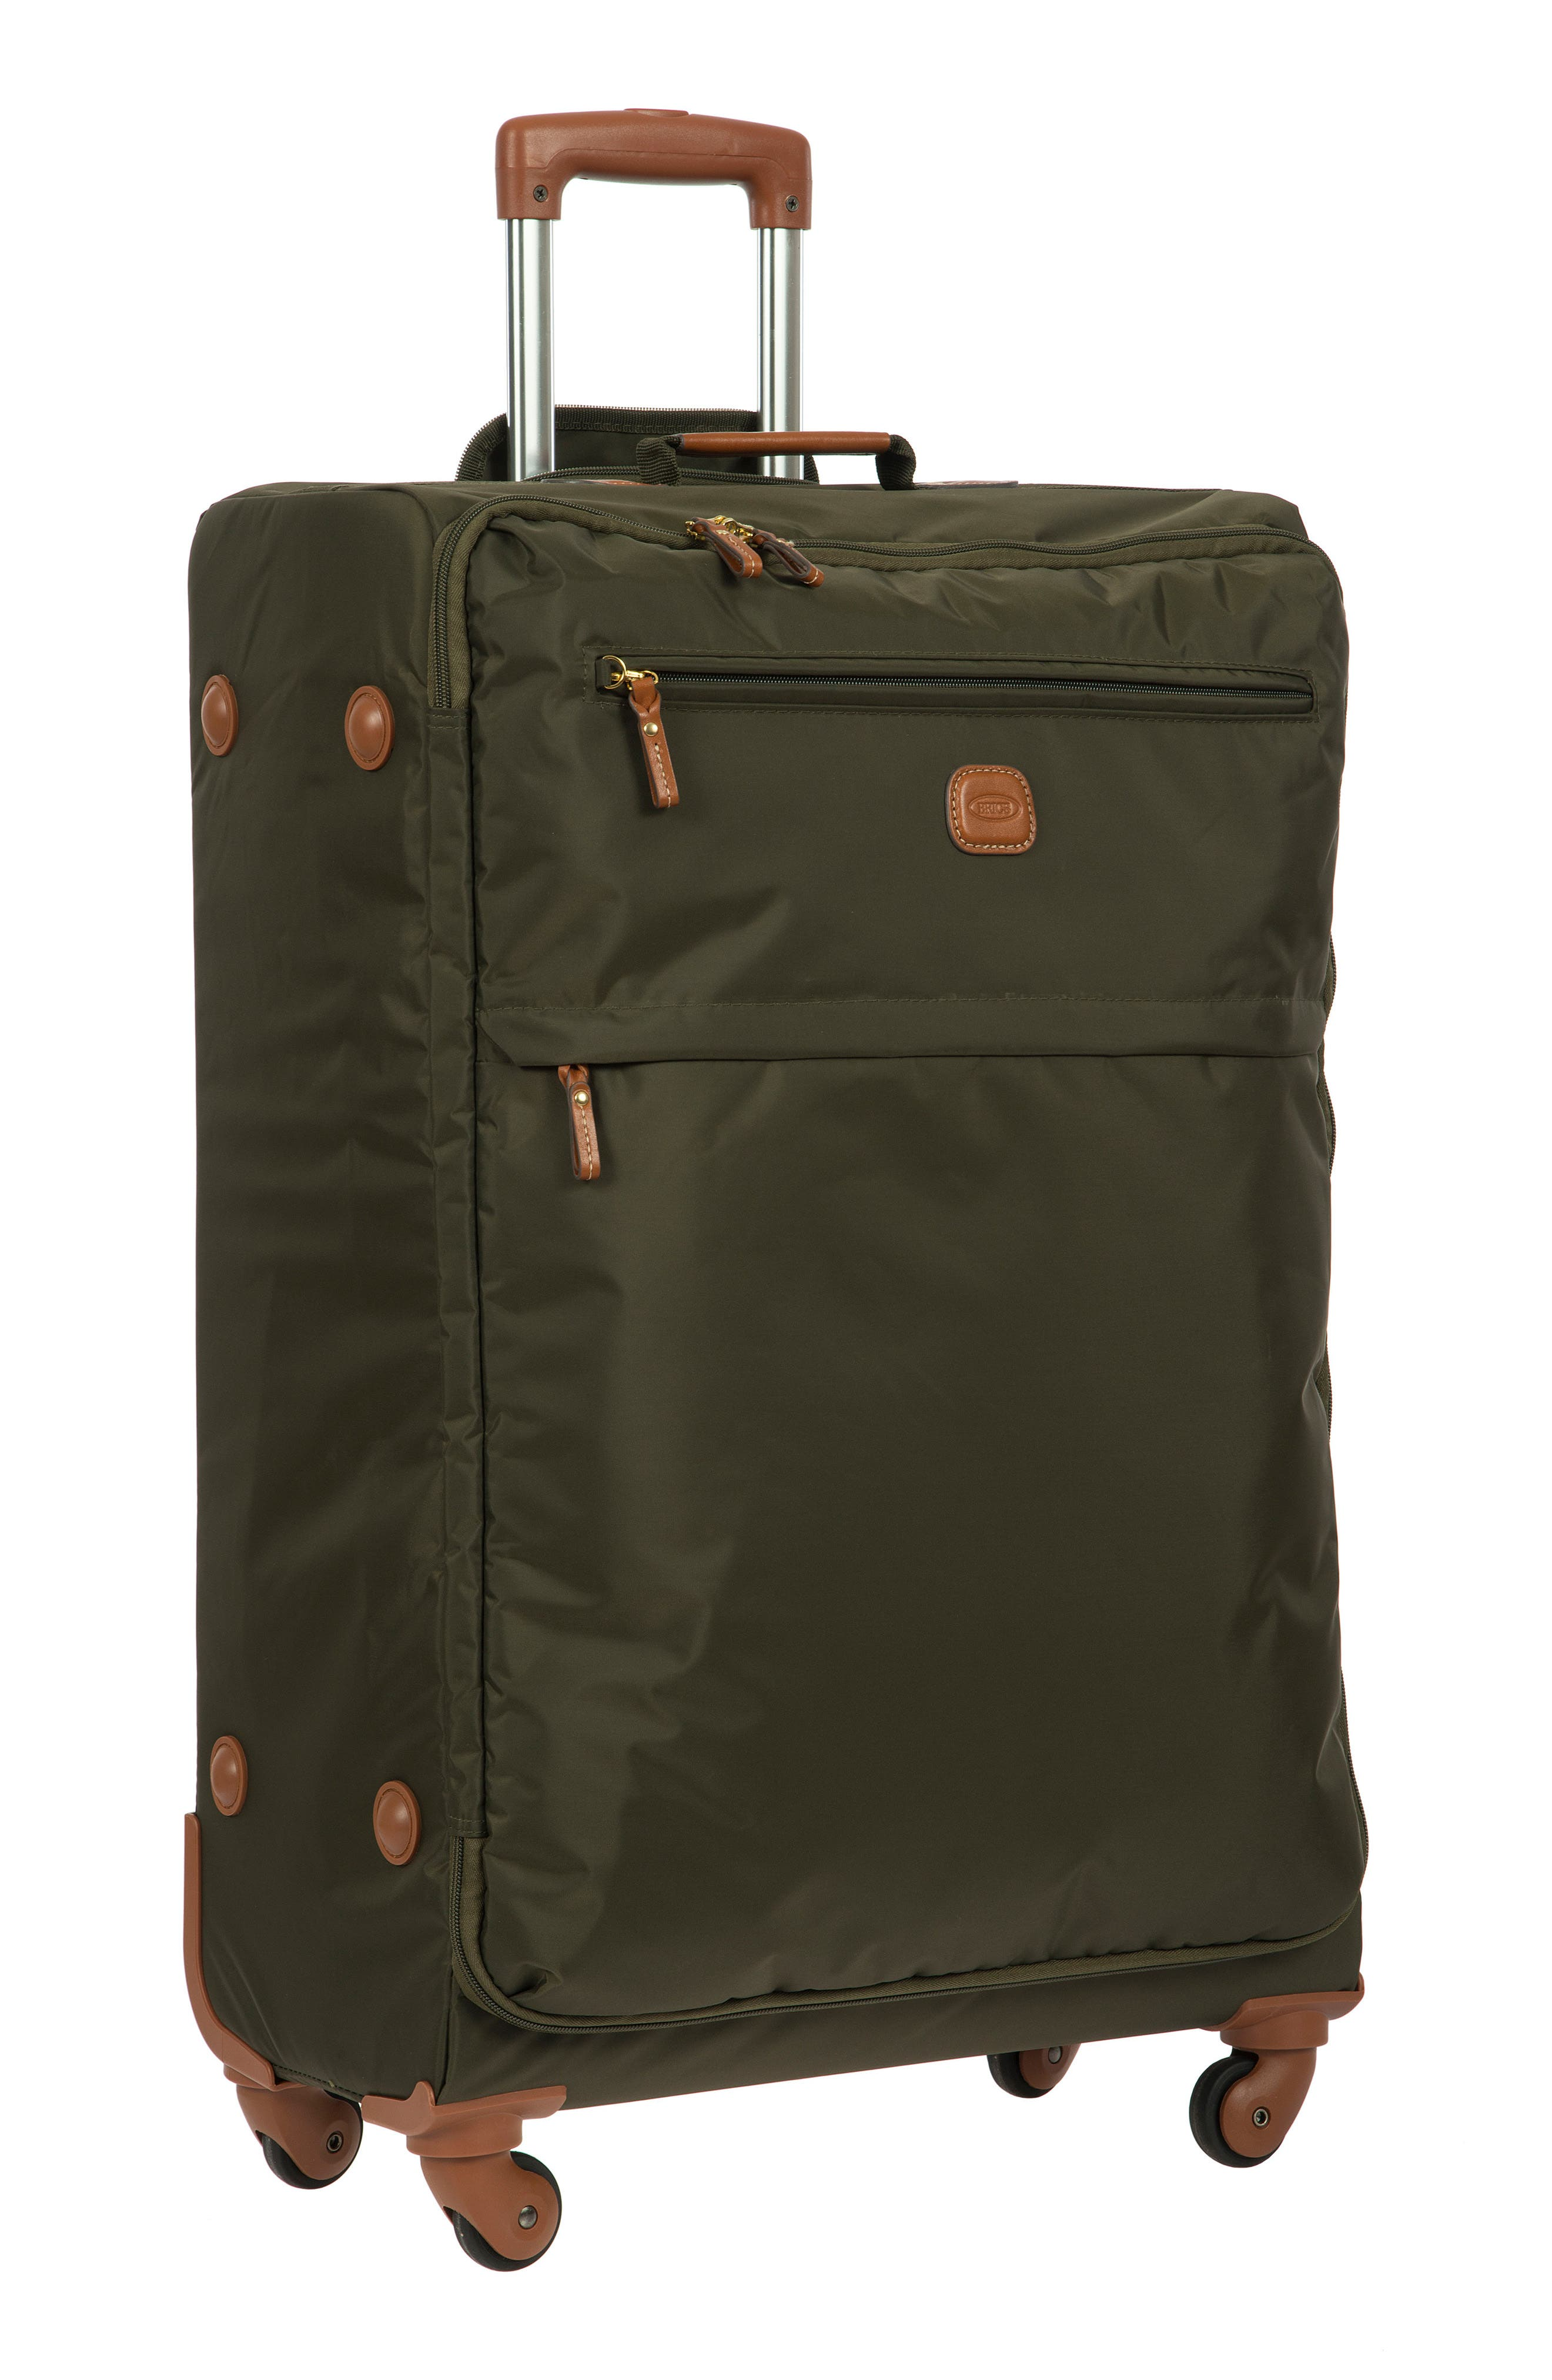 X-Bag 30-Inch Spinner Suitcase,                             Alternate thumbnail 10, color,                             OLIVE